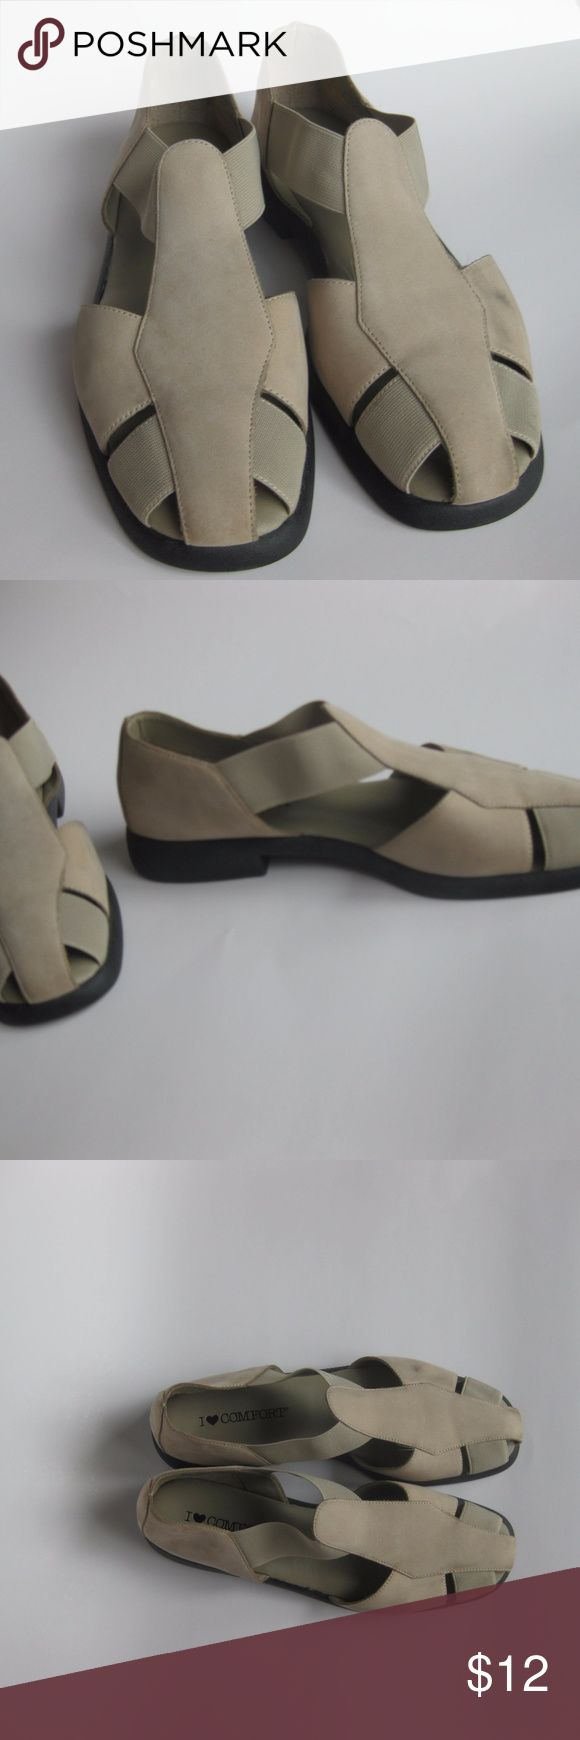 Vintage 90s beige tan brown cage strap sandals These adorable 90s sandals from Sears were a part of every mom's closet in the second half of the 90s. This particular pair is a beige/tan/light brown color. Feels like suede, very soft. straps near the toes and ankles are stretchy for fit. Barely worn as they are a little snug on me. Only flaw is a black mark on the shoe that should come out with a proper cleaning (see fifth picture). I Love Comfort Shoes Sandals